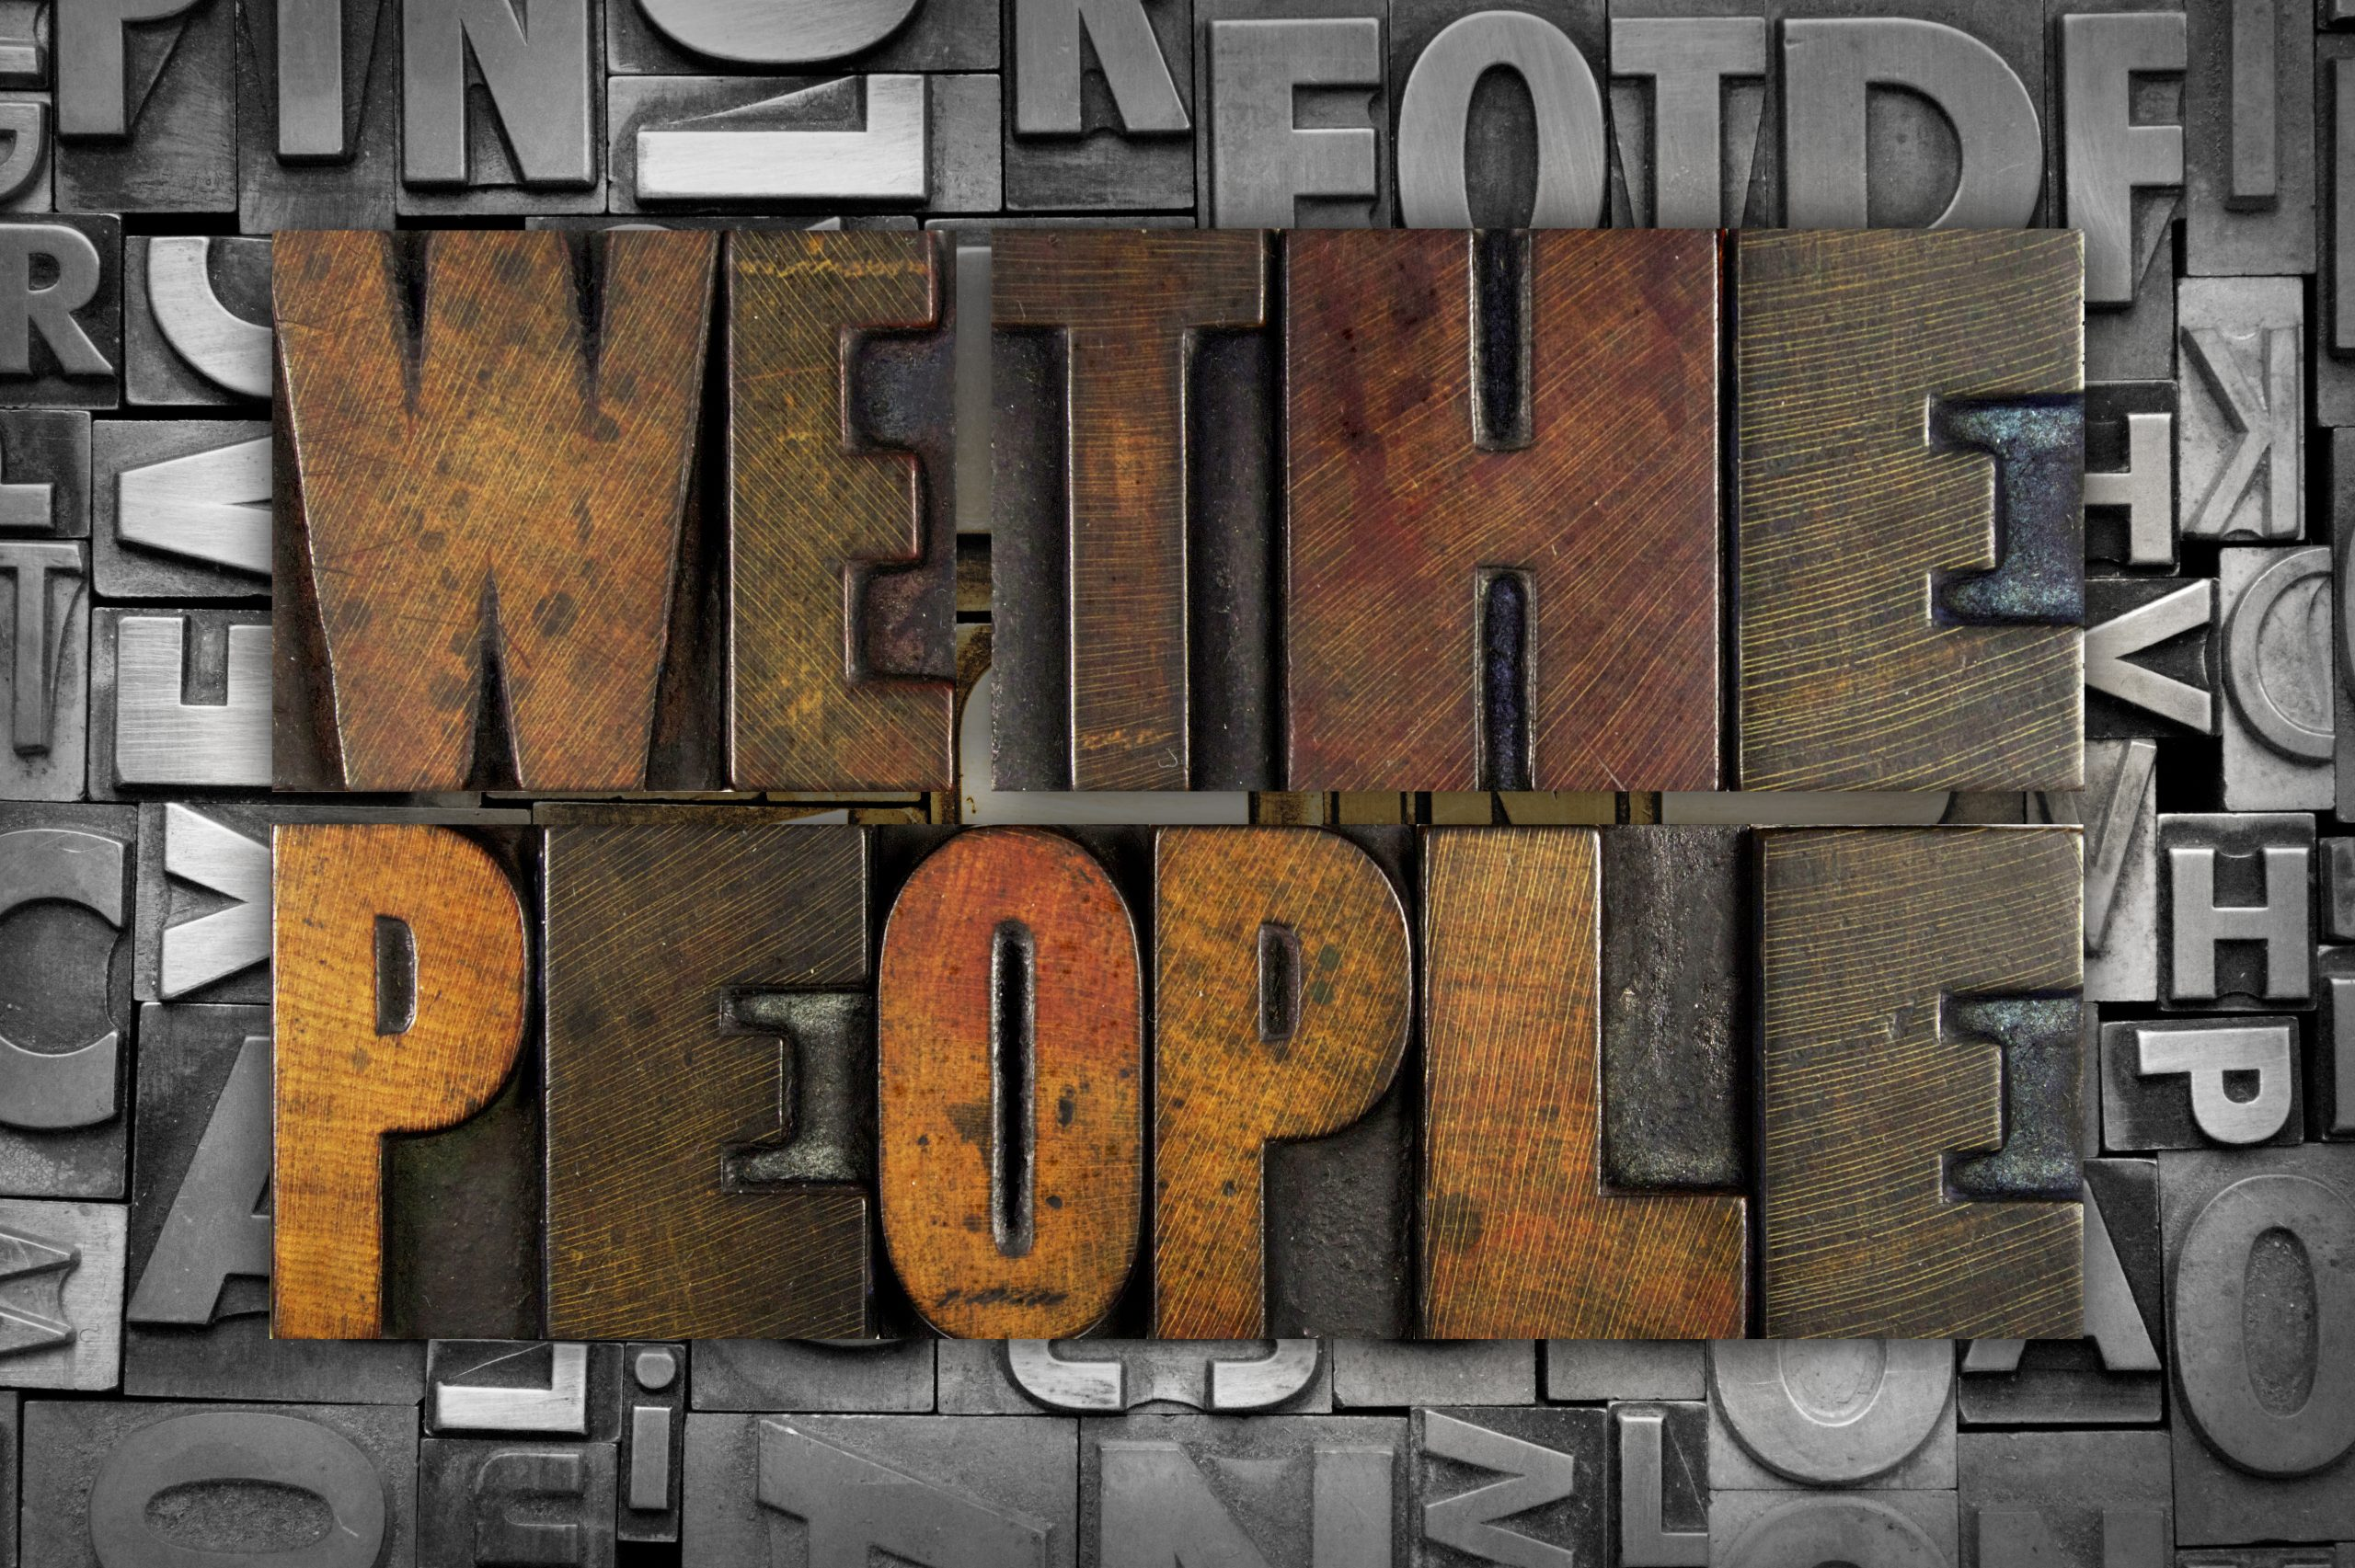 WE THE PEOPLE written in vintage letterpress type